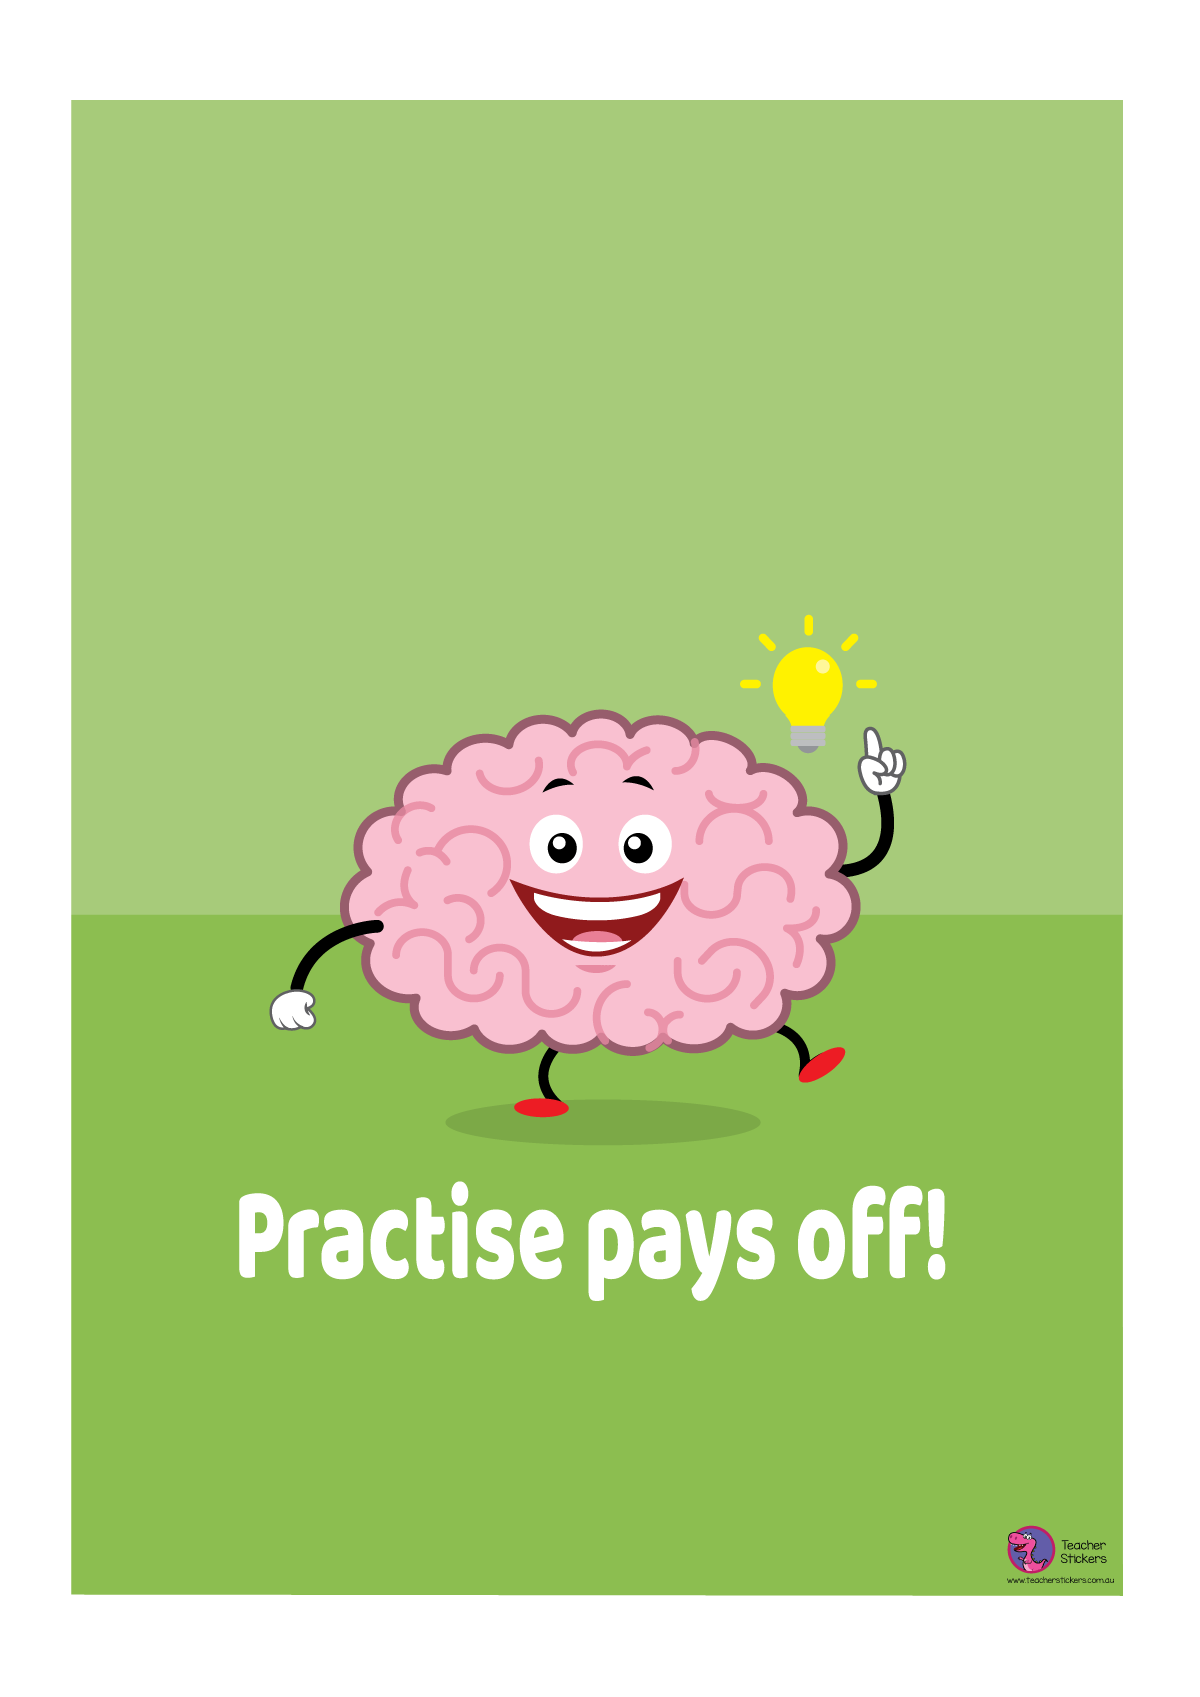 Growth Mindset Poster - Practise Pays Off